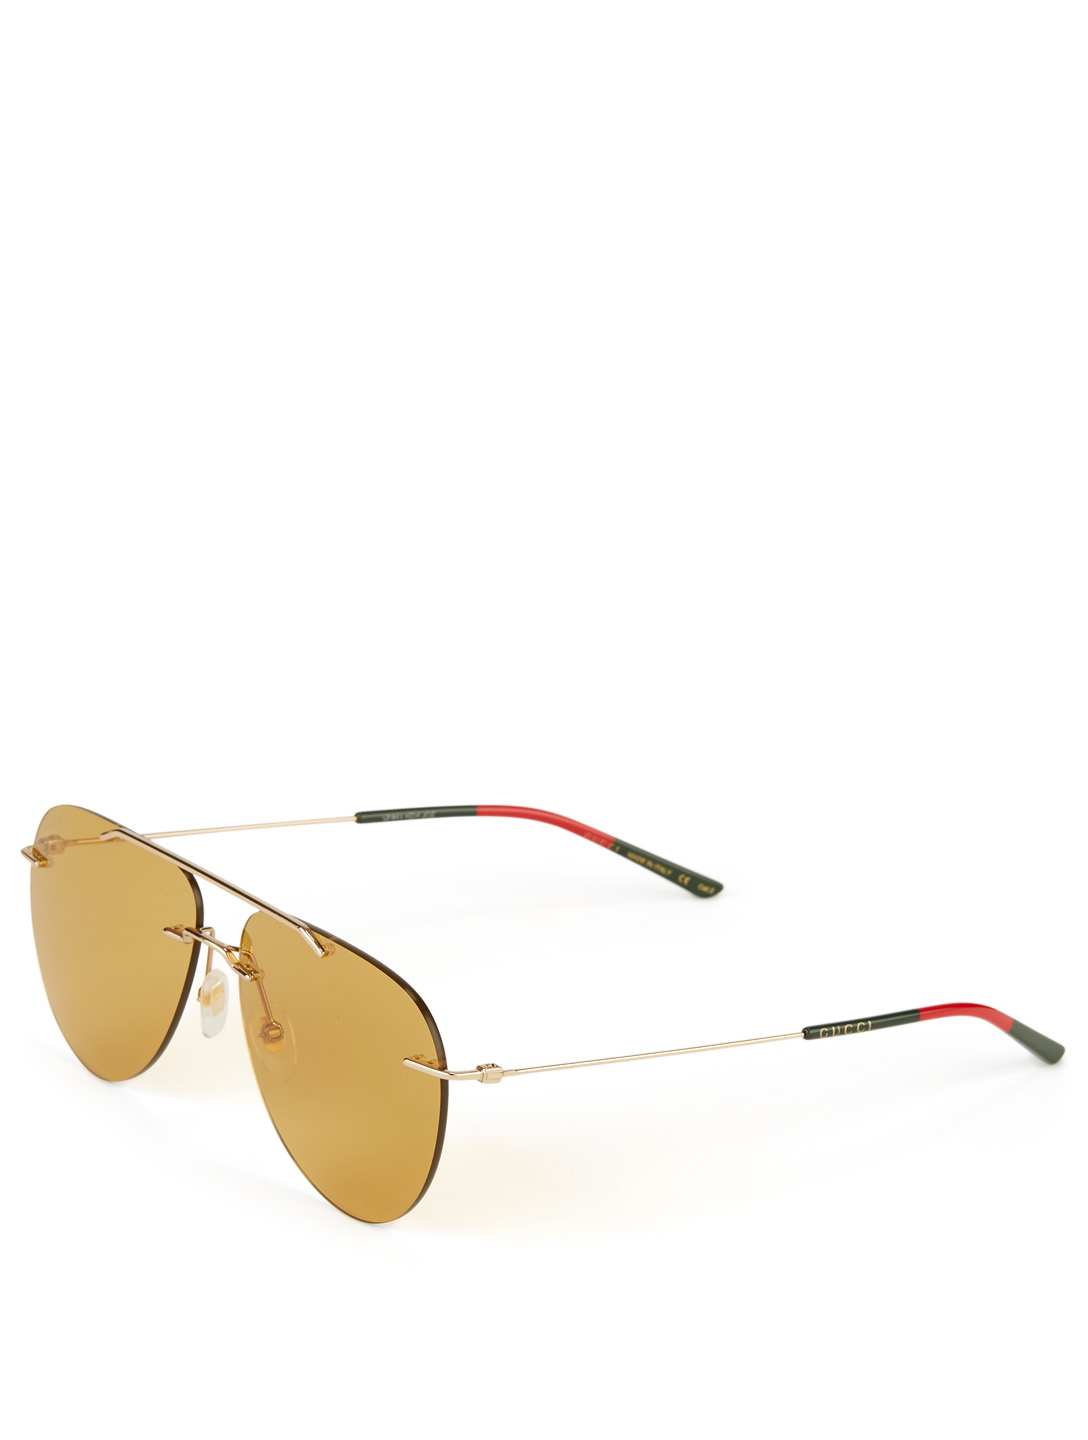 GUCCI Rimless Aviator Sunglasses Men's Yellow